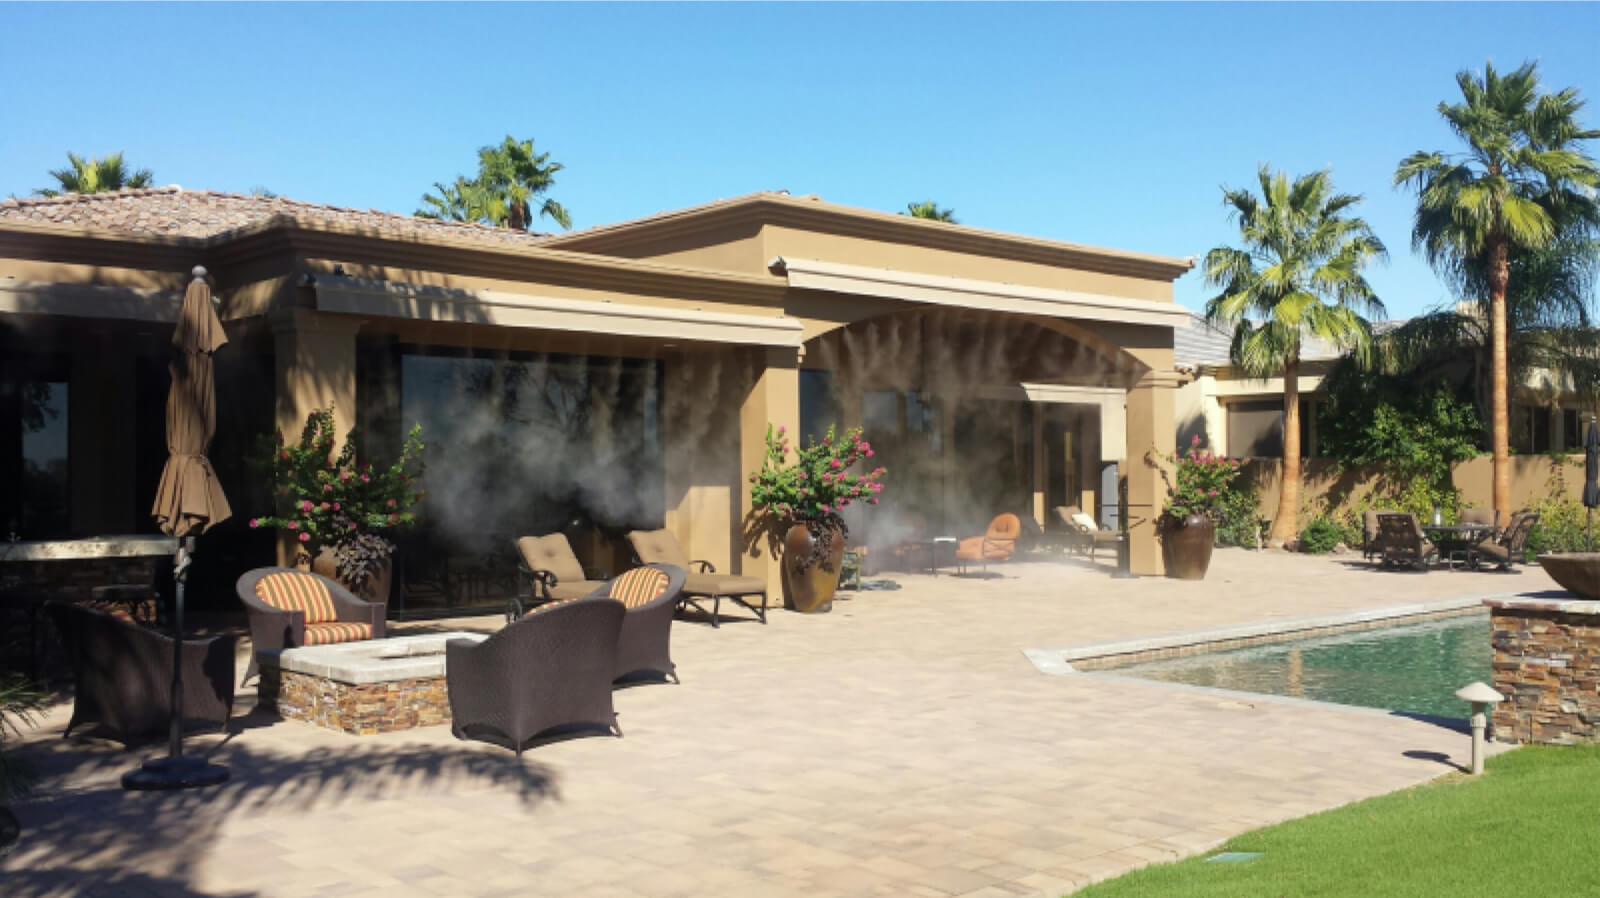 systems for waterfall desert palm effects and springs cooling effect special misters misting patio